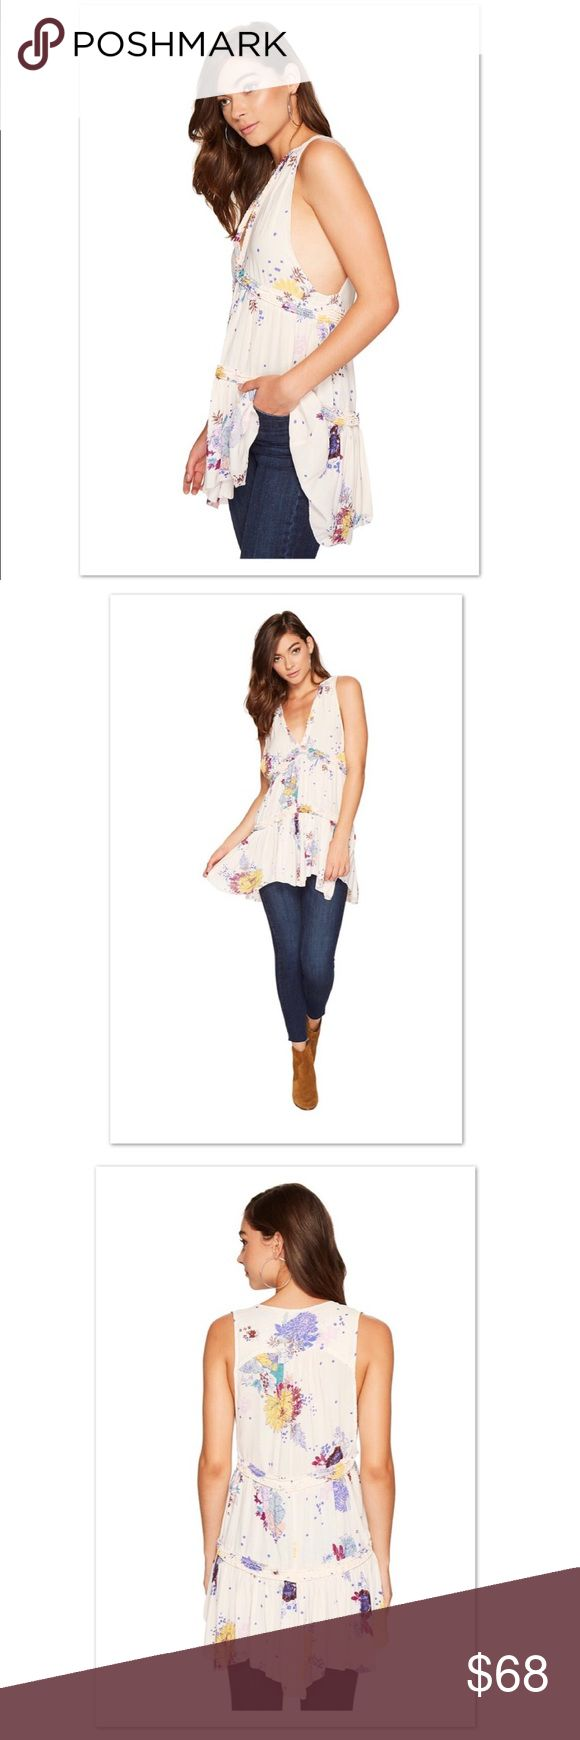 Free People Floral Tunic Spring into fab fashion in this Free People™ Purple Haze Printed Tunic. Tunic boasts a chic pattern on a lightweight fabrication. Flattering empire silhouette Free People Tops Tunics